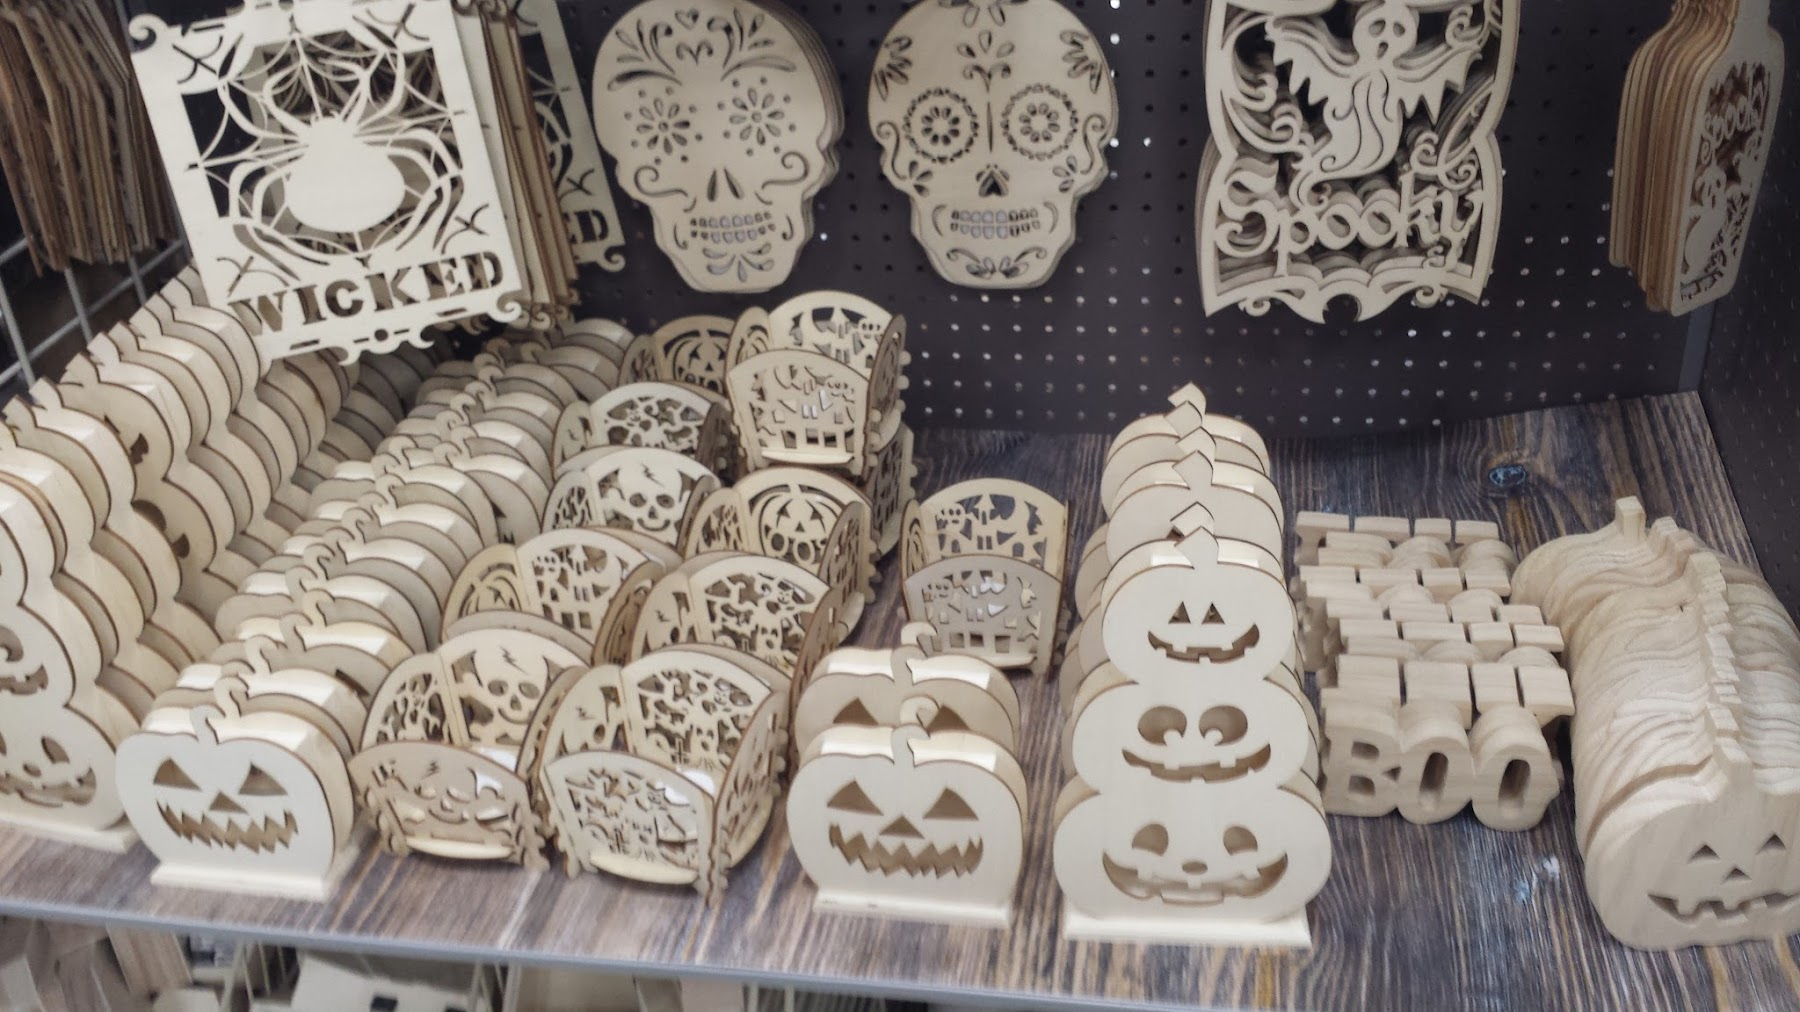 Halloween Decorations at Michaels